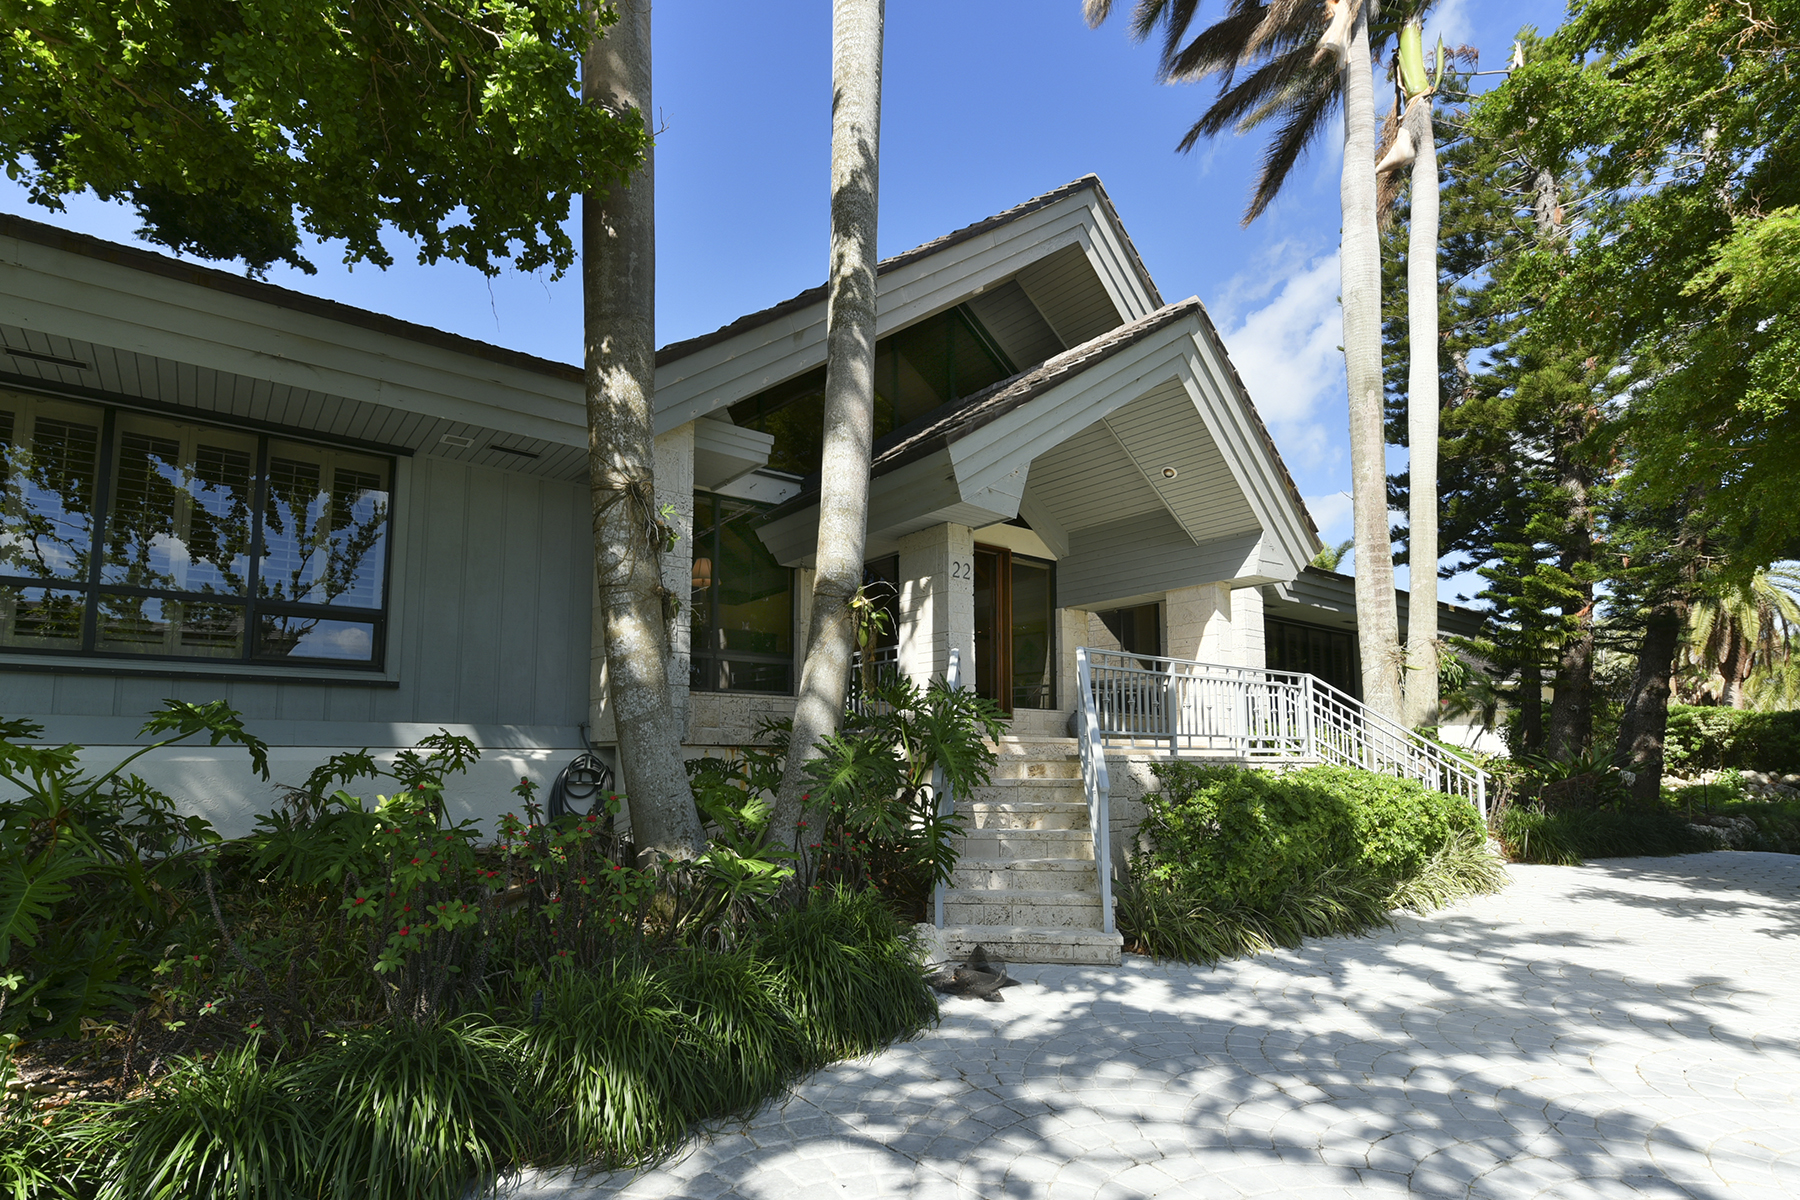 独户住宅 为 销售 在 Spacious Waterfront Home at Ocean Reef 22 Sunrise Cay Drive, Ocean Reef Community, 拉哥, 佛罗里达州, 33037 美国